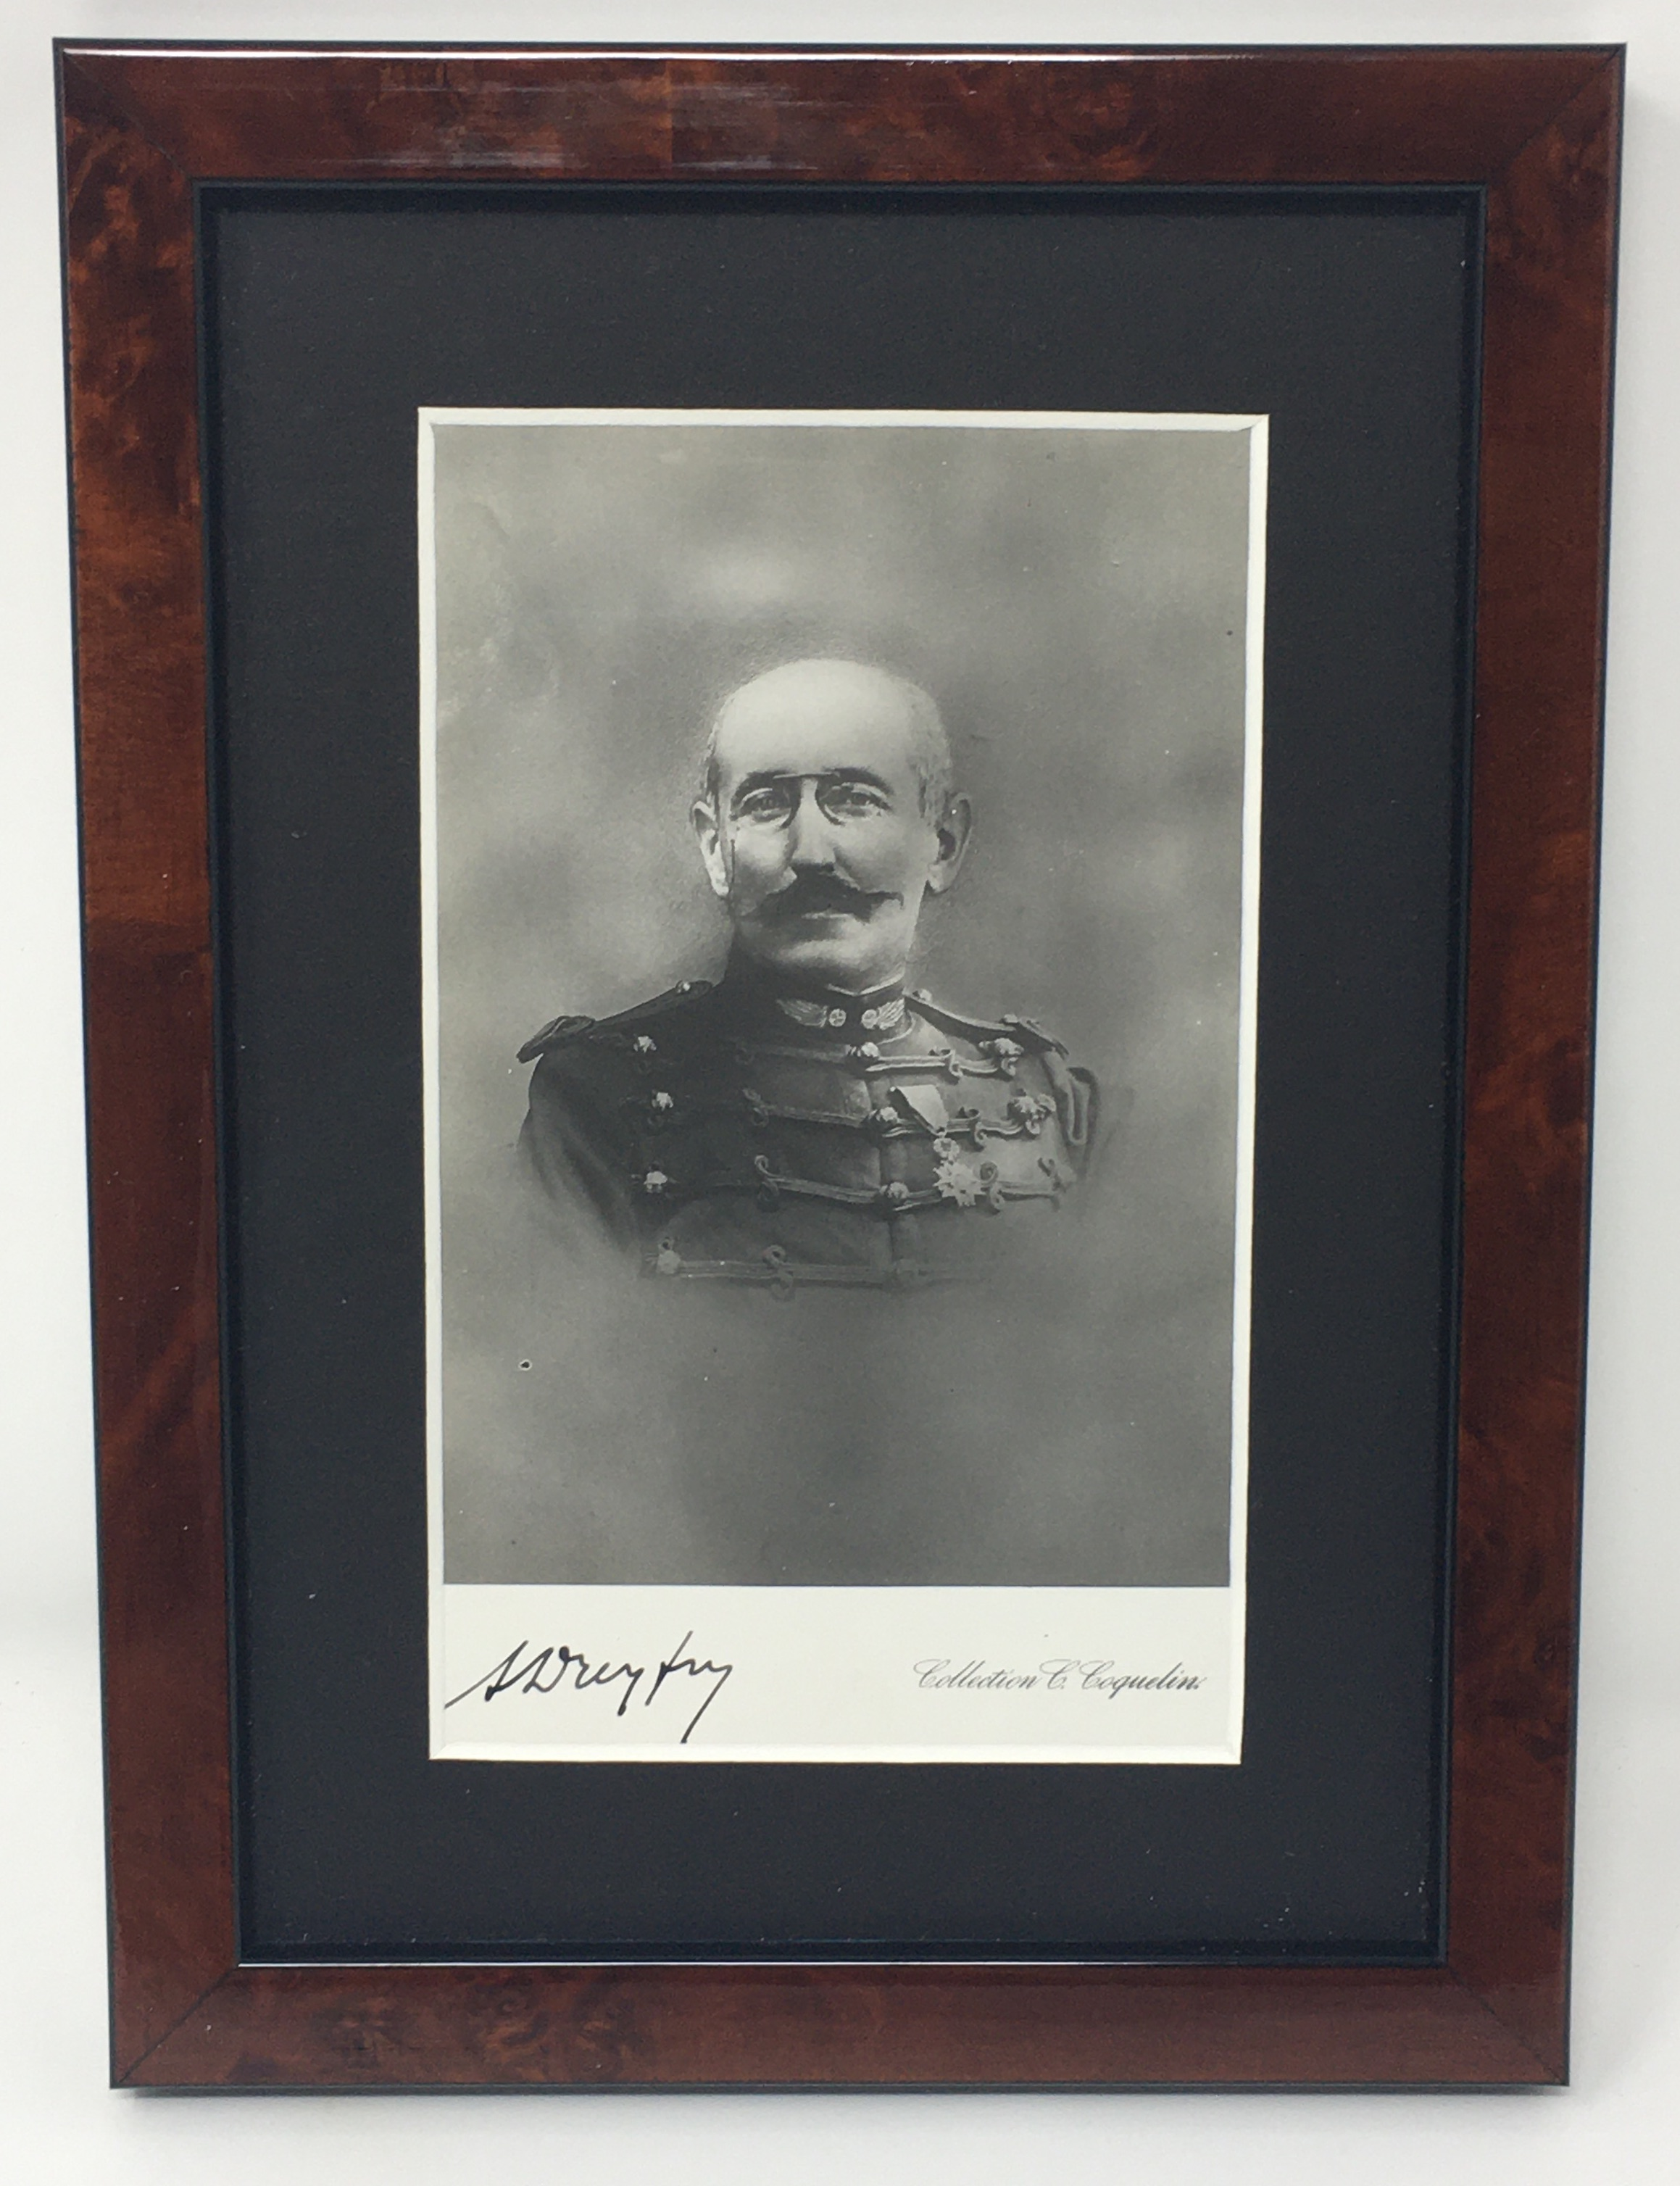 J'Accuse Newspaper, Emile Zola Quote, Signed Dreyfus Portrait, Rare Trial Drawings & Schwartzkoppen - Image 8 of 74